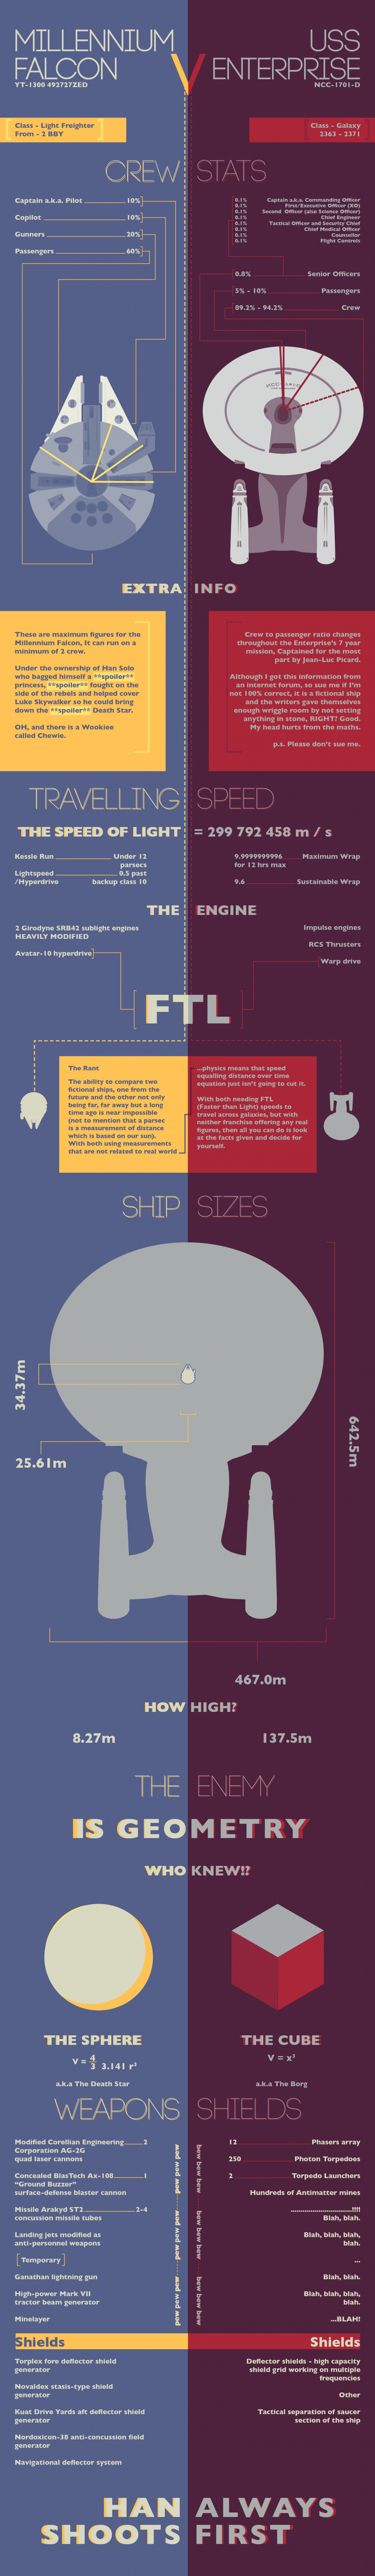 Millenium Falcom vs. USS Enterprise  Infographic